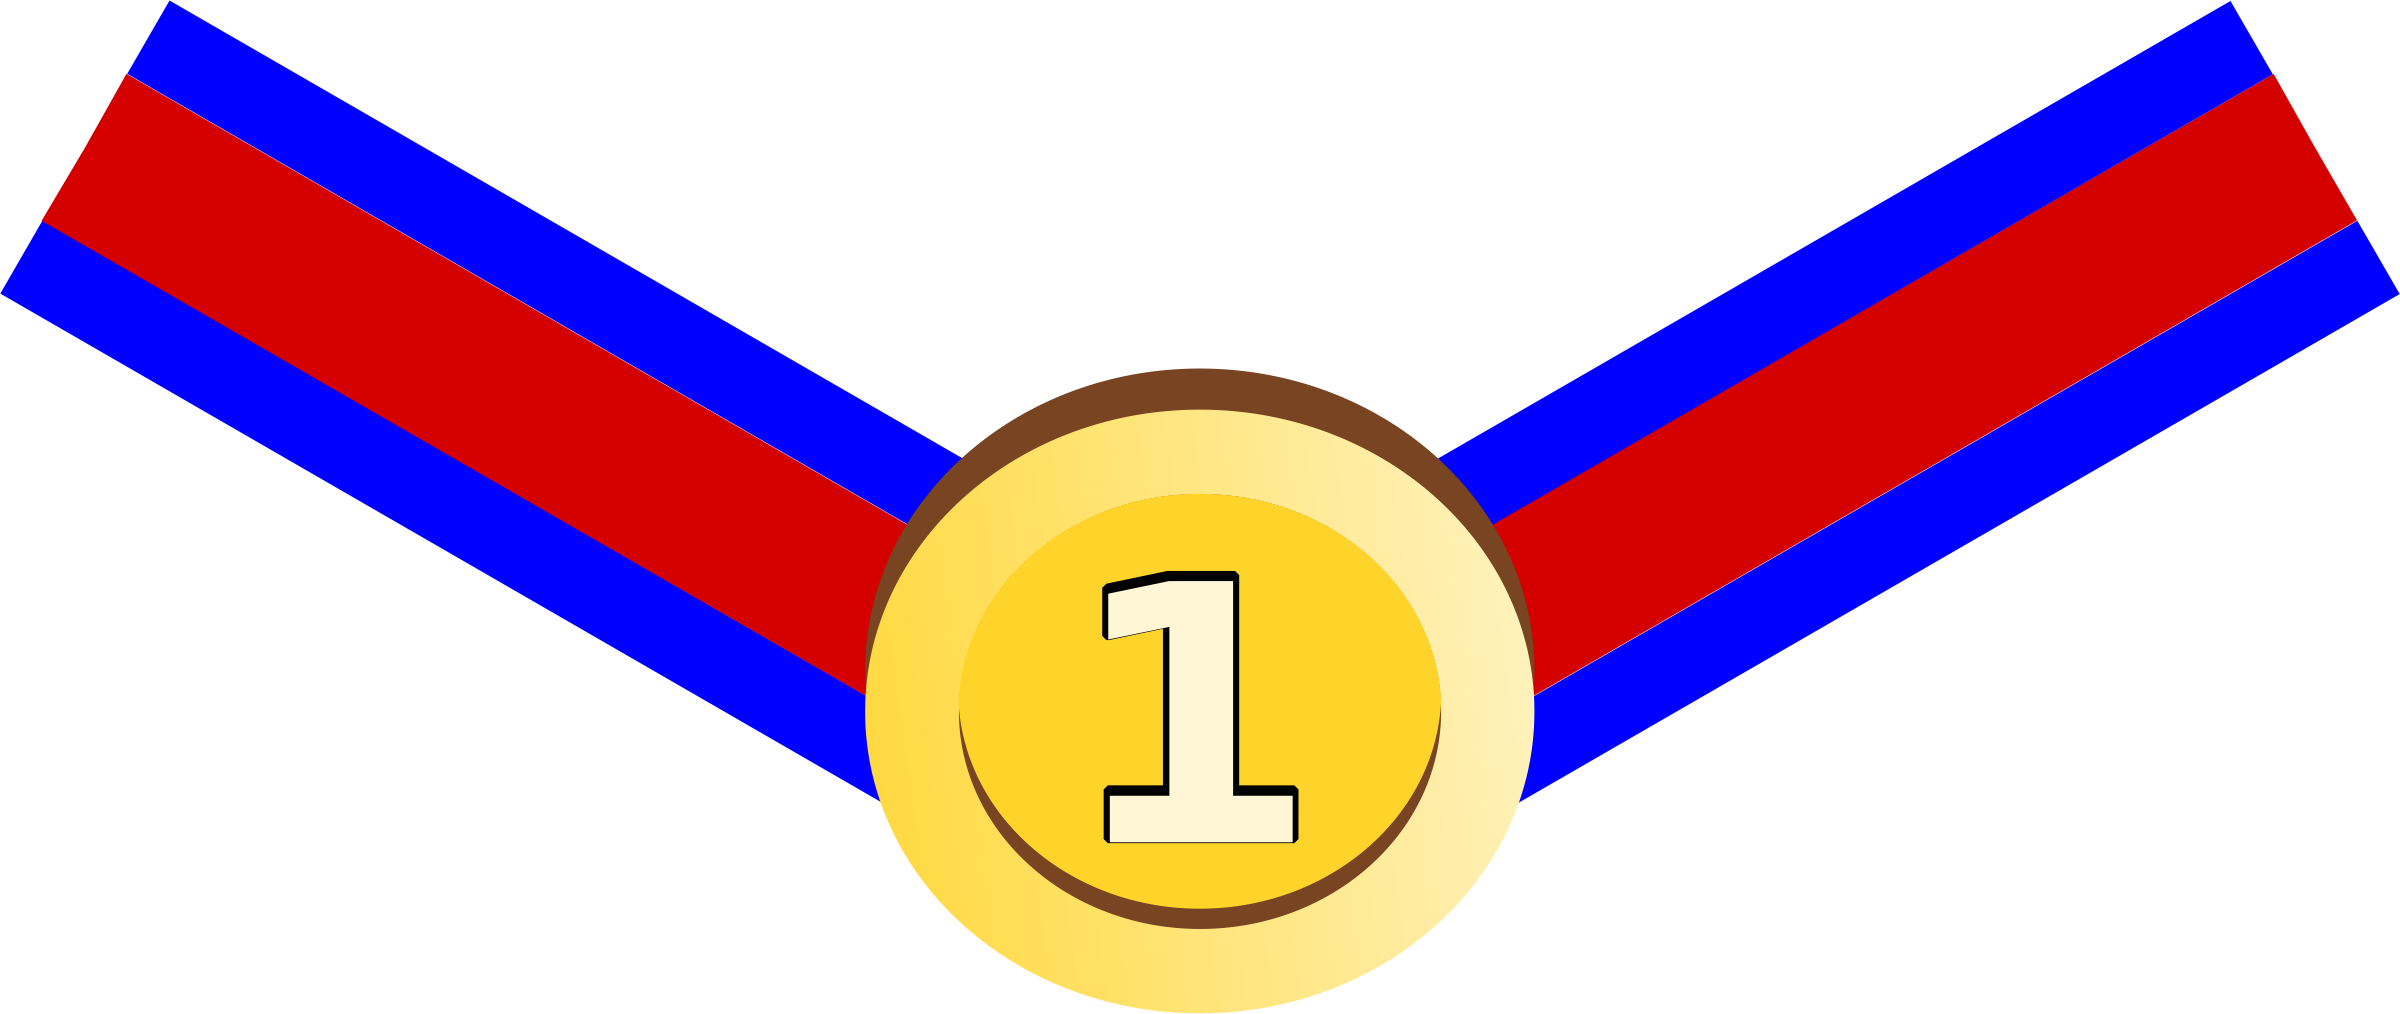 Number 1 clipart medal.  collection of high